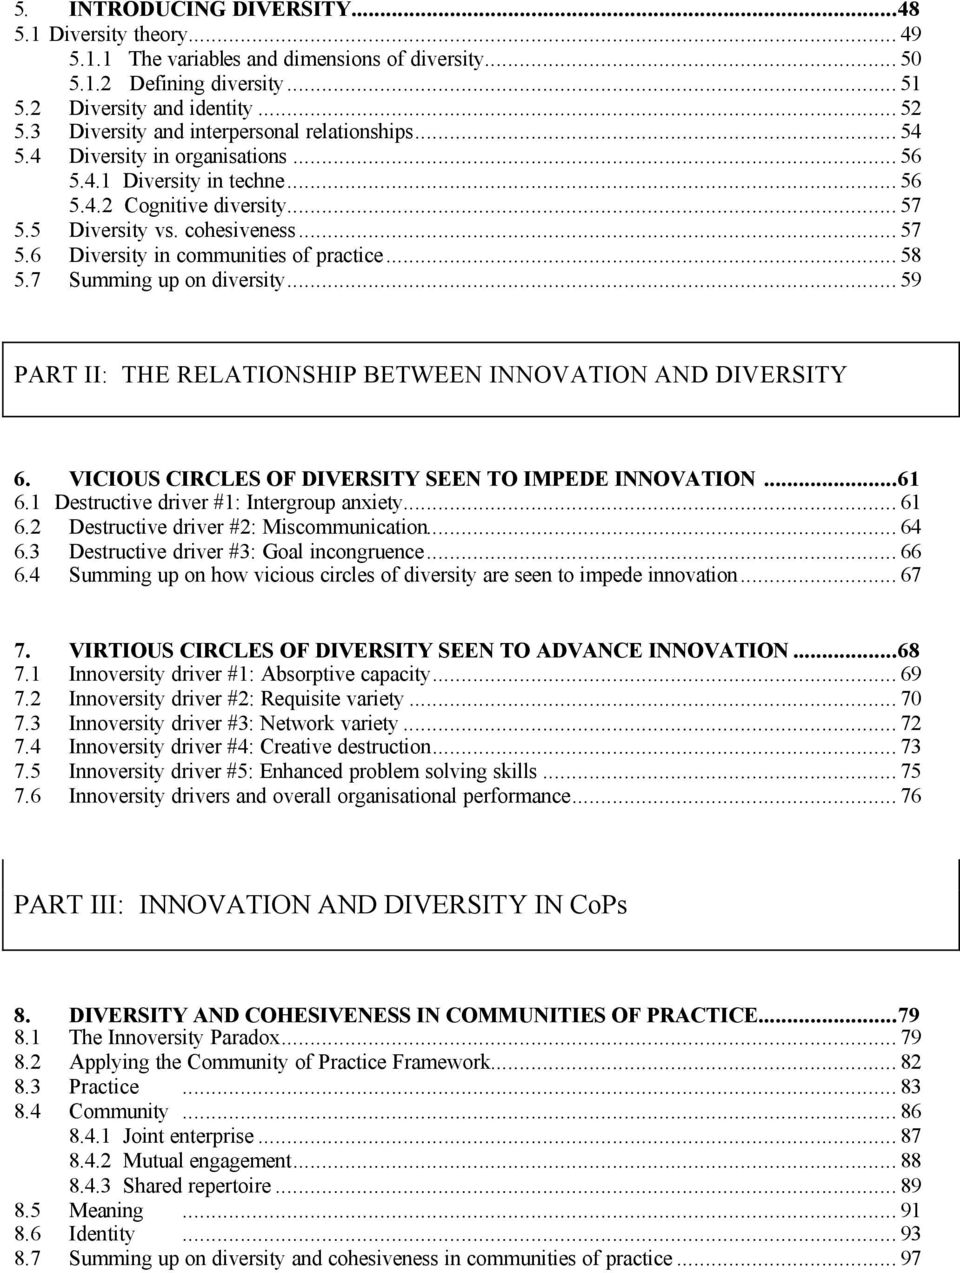 .. 58 5.7 Summing up on diversity... 59 PART II: THE RELATIONSHIP BETWEEN INNOVATION AND DIVERSITY 6. VICIOUS CIRCLES OF DIVERSITY SEEN TO IMPEDE INNOVATION...61 6.